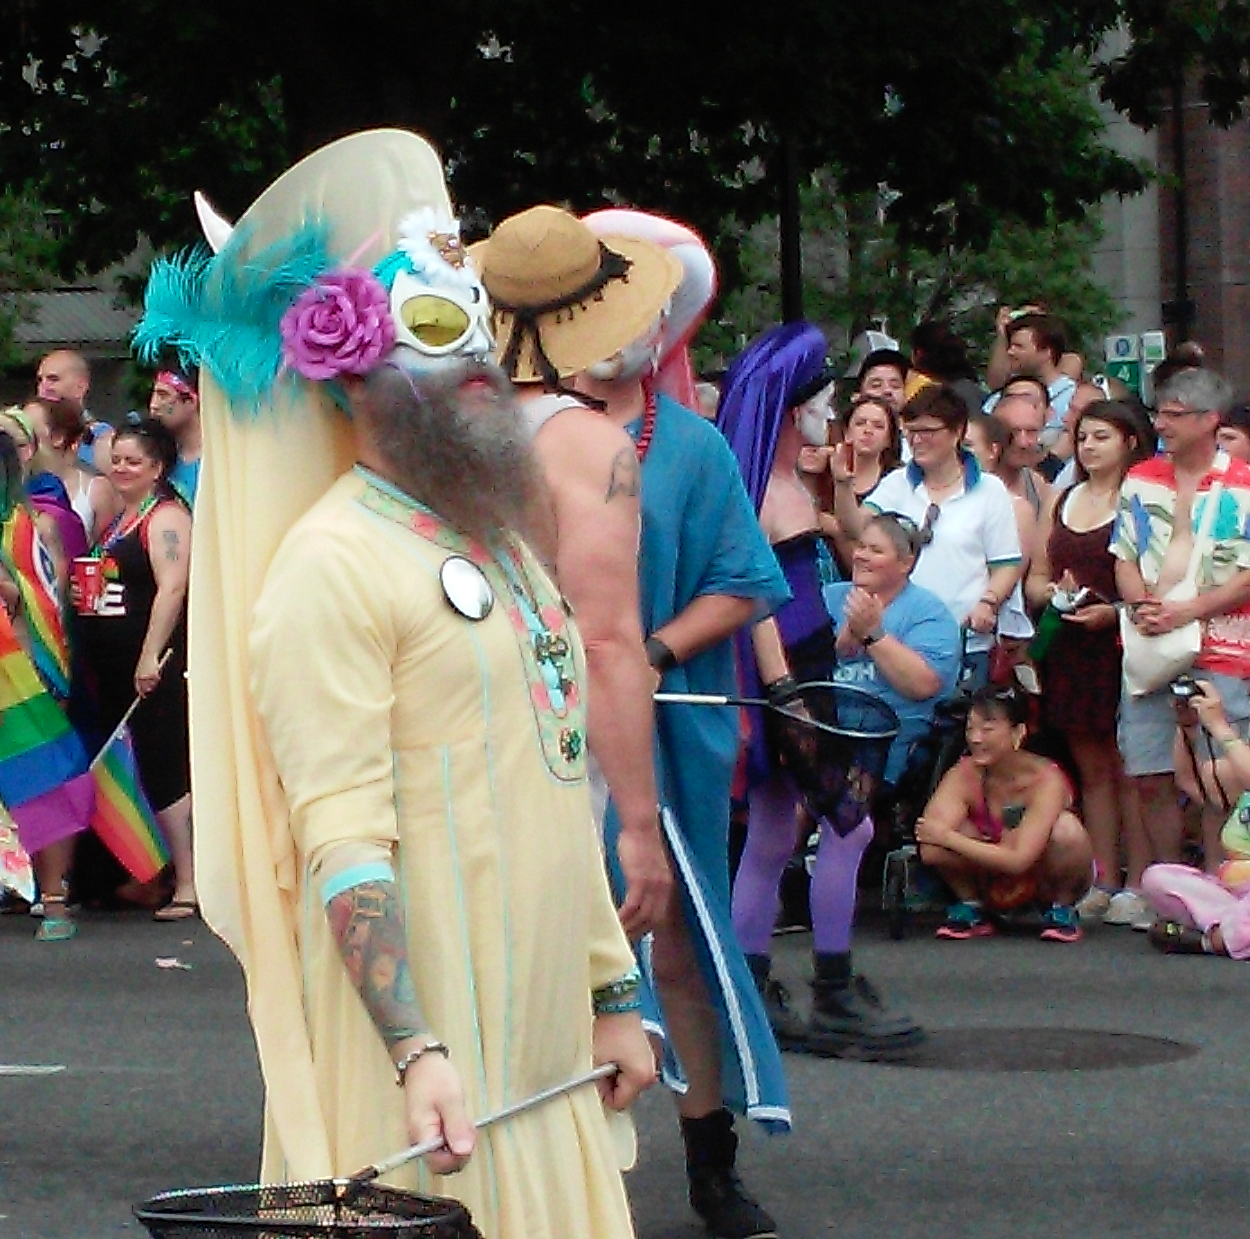 The Sisters of Perpetual Indulgence at 2015 Seattle Pride Parade (c) Martha Burwell